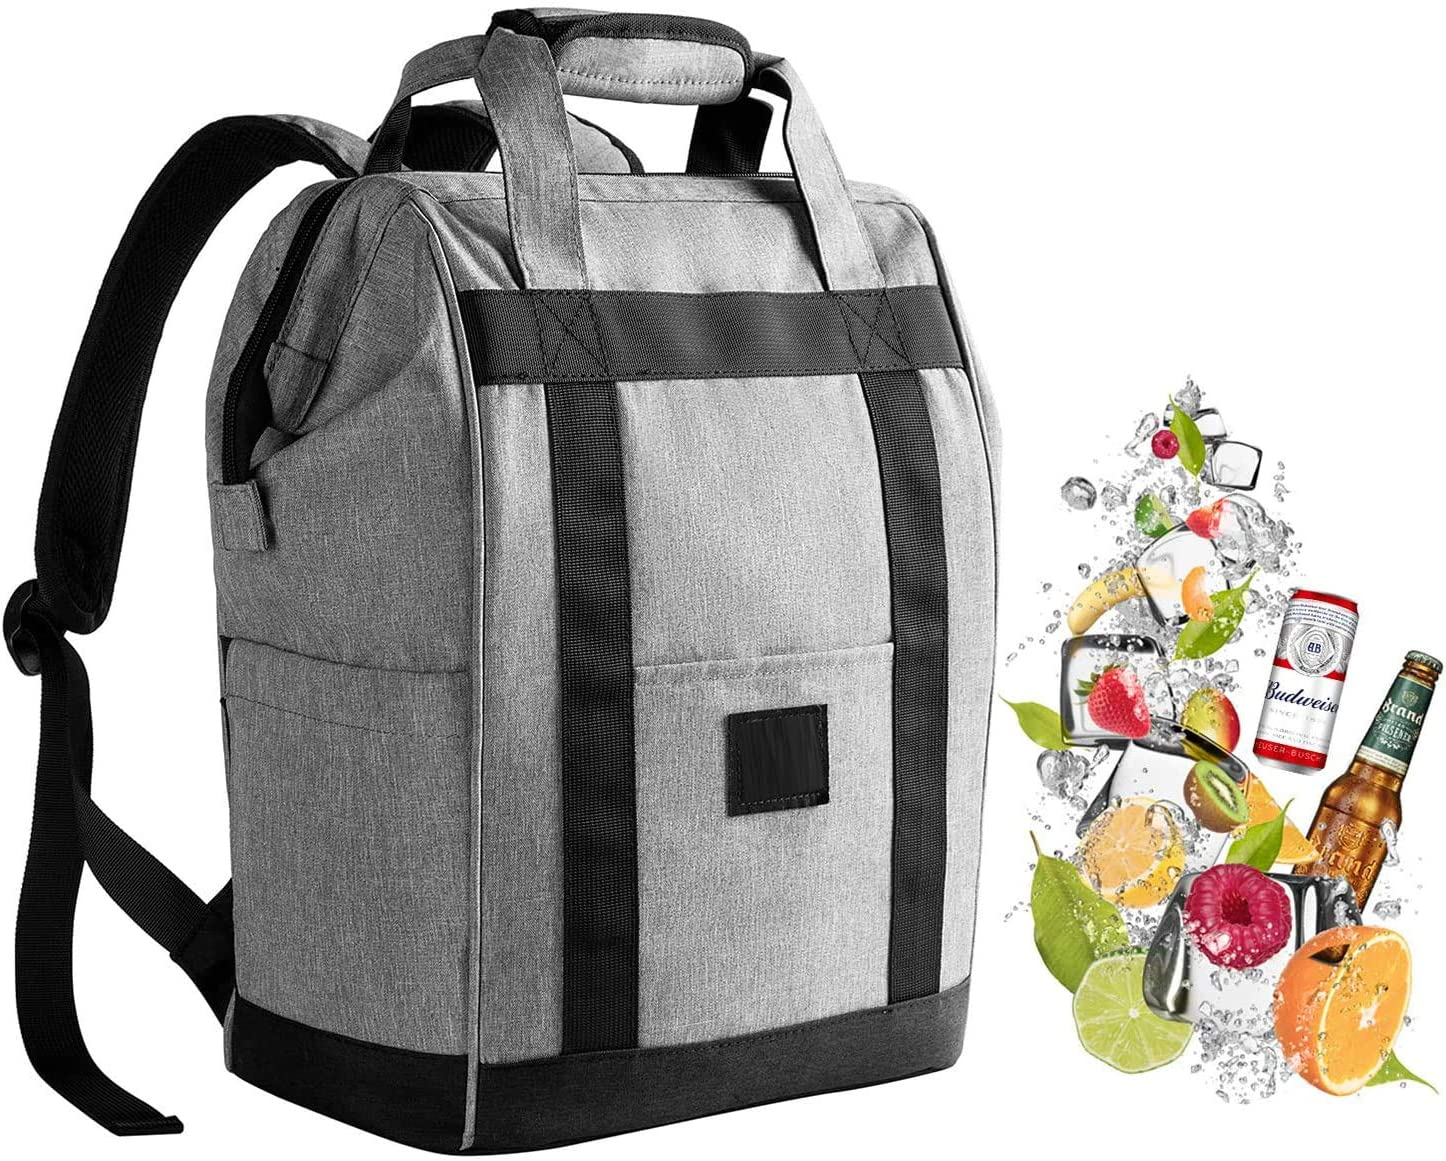 Backpack Cooler Insulated Leakproof Waterproof Oxford Fabric Light Weight Large Capacity Ice Picnics Bag Cooler Tote for Beach, Travel, Camping, Hiking,Field Trips Gray